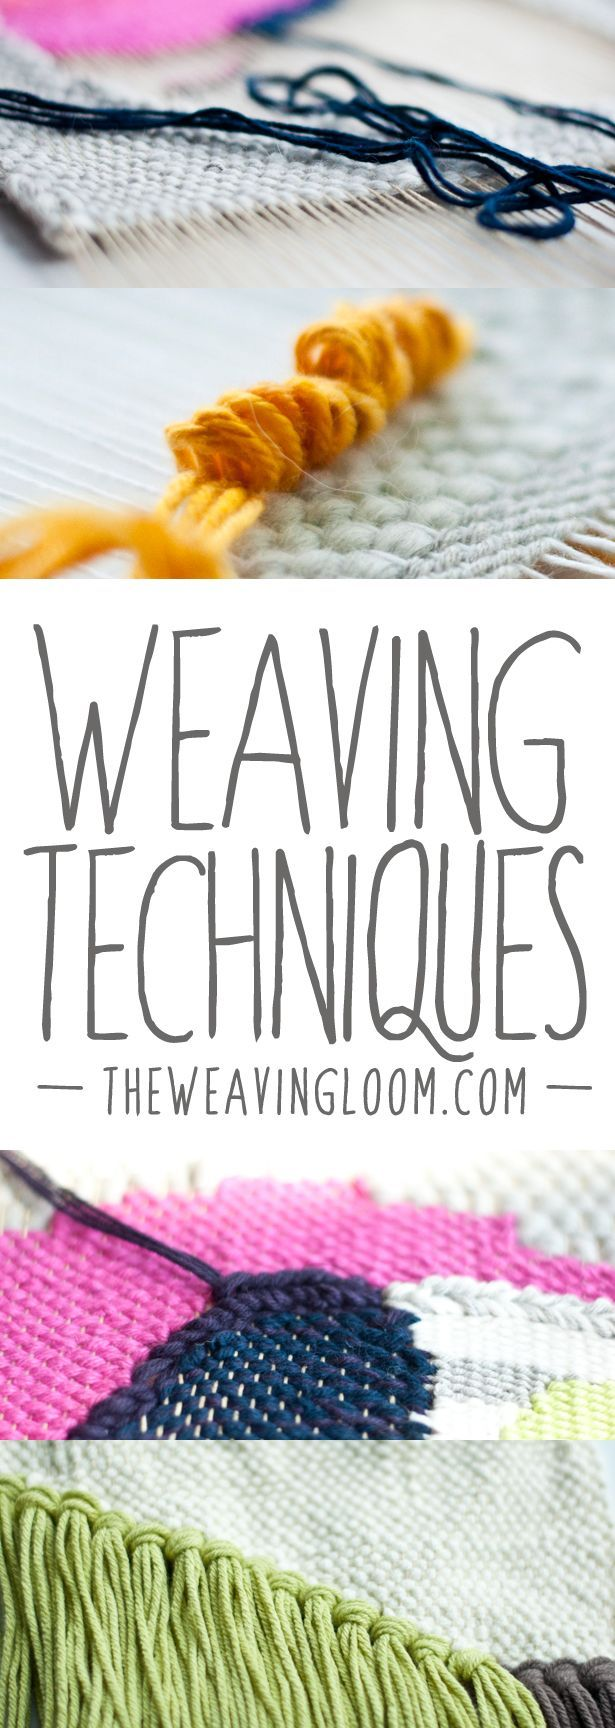 A roundup of Weaving Techniques tutorials - this blog has great information for beginners! Learn to weave :D